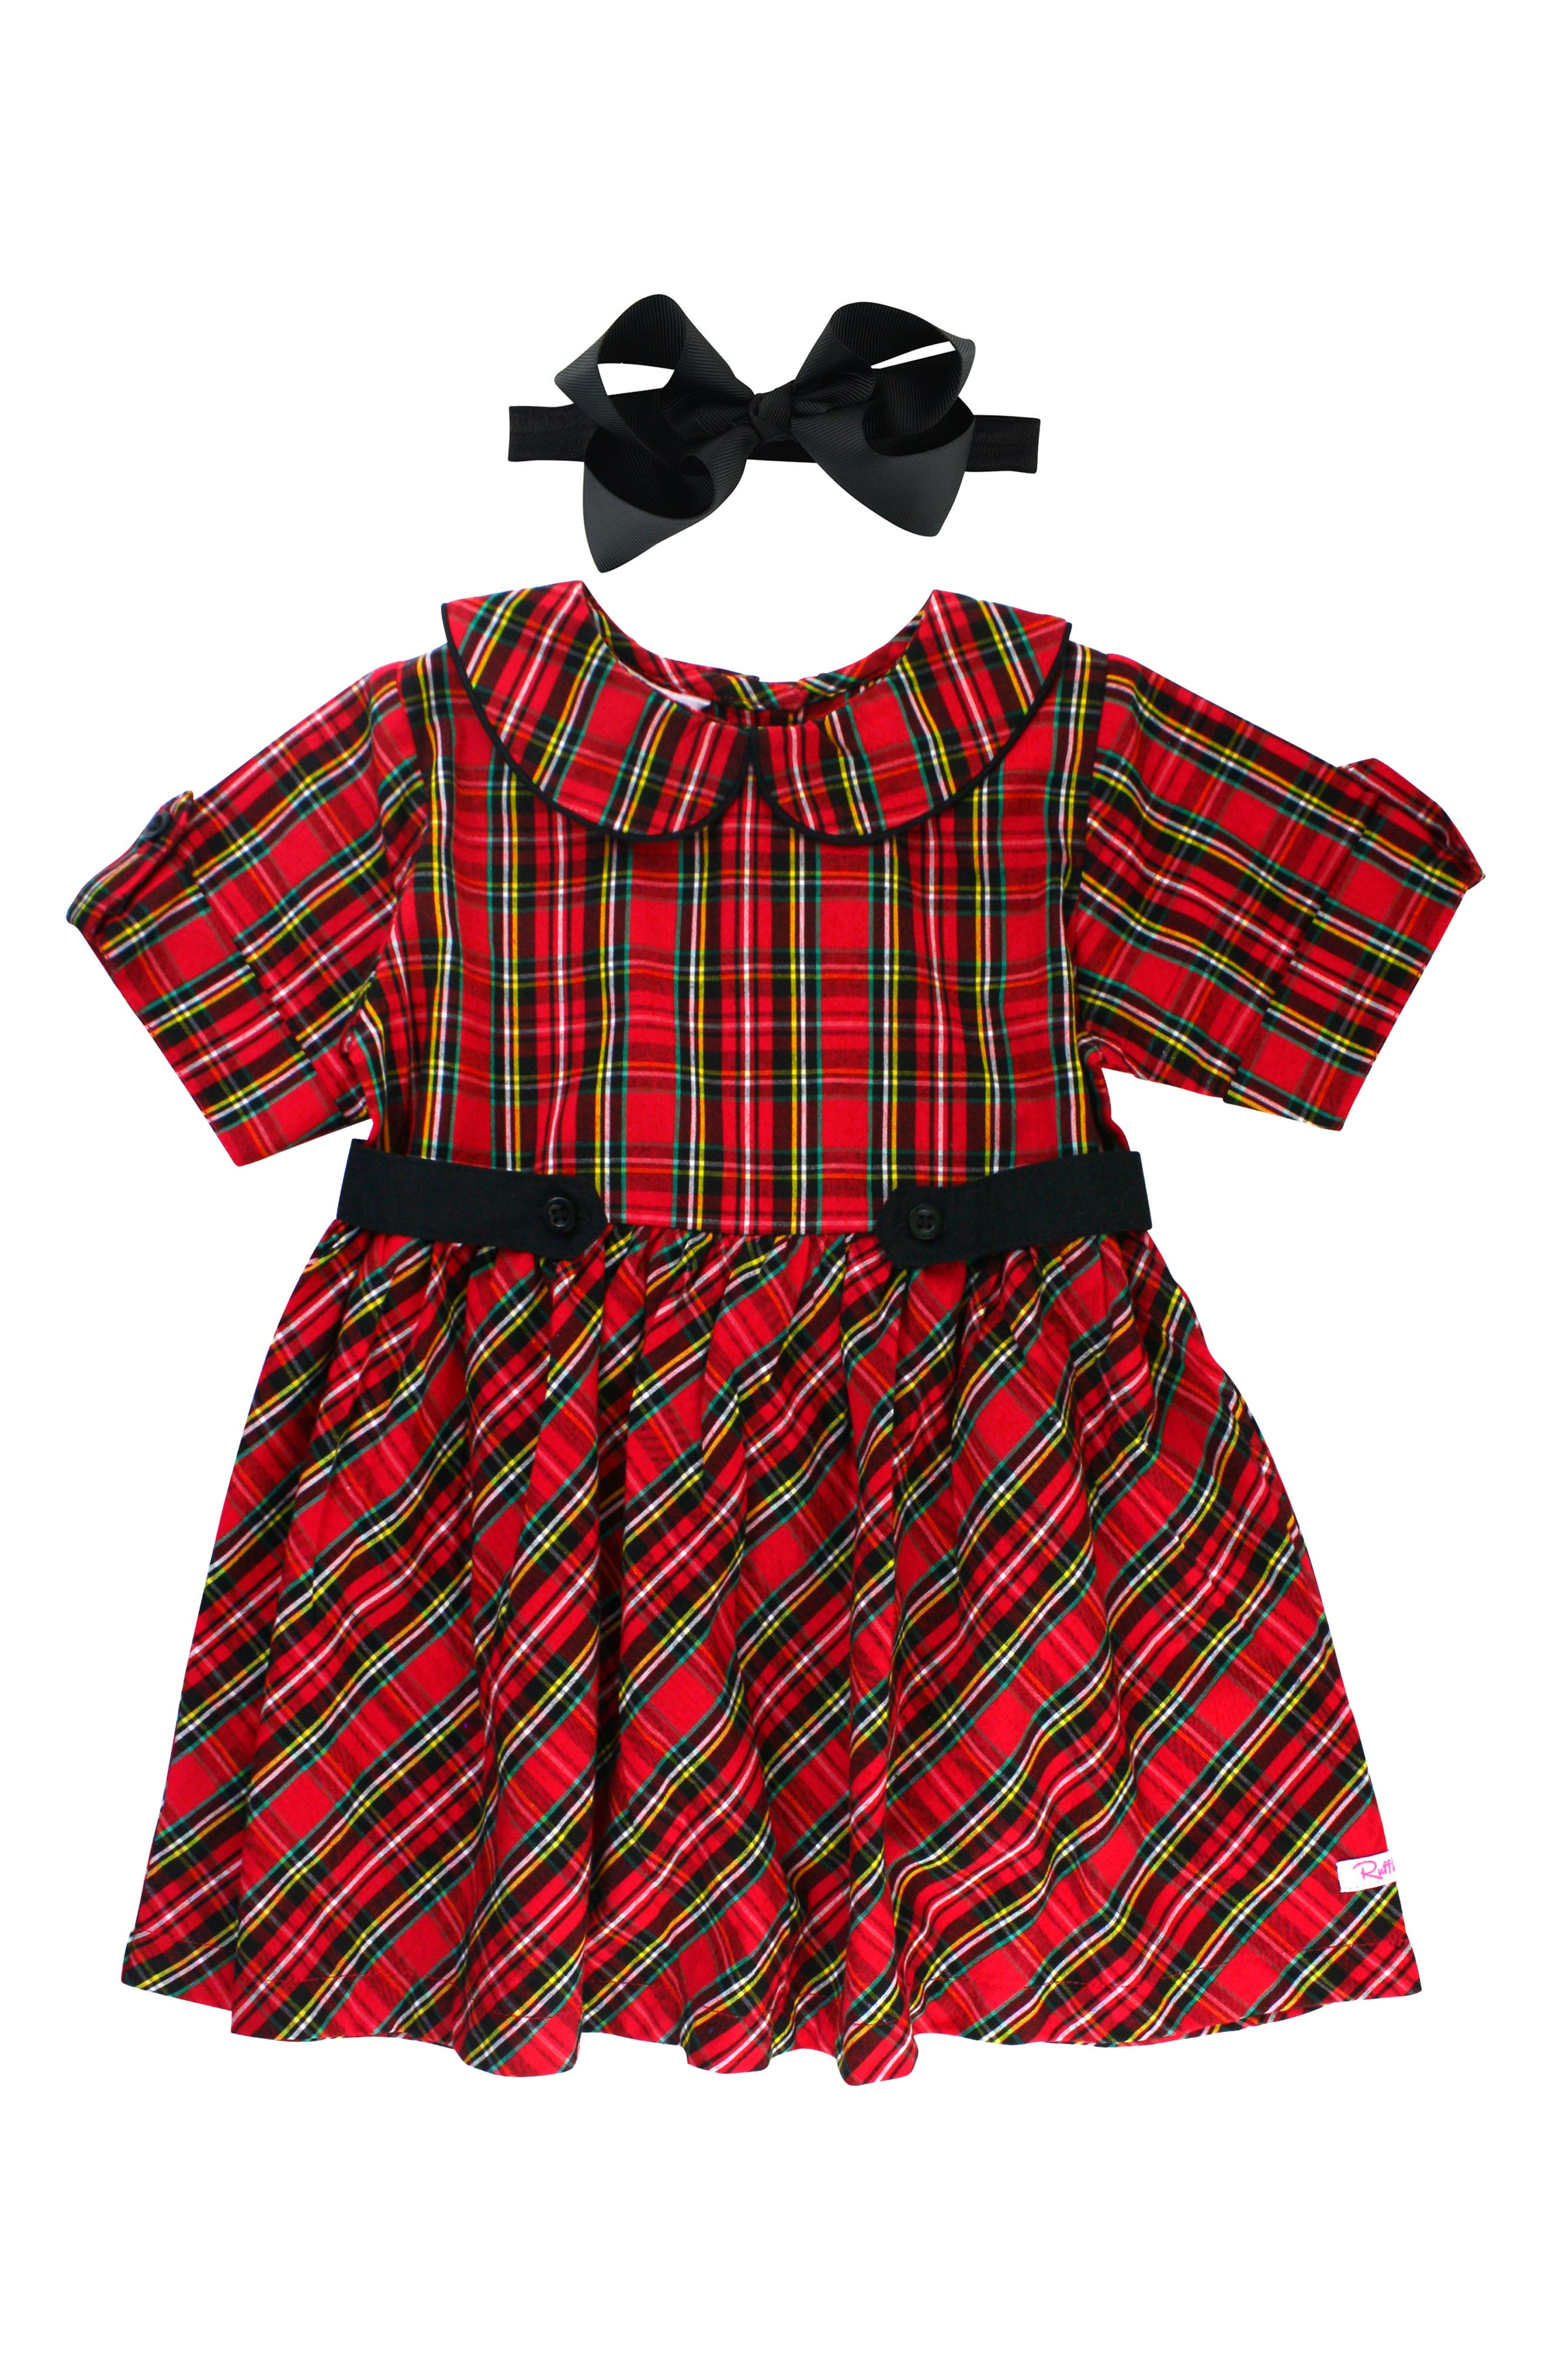 RUFFLEBUTTS,                             Peter Pan Dress & Bow Head Band Set,                             Main thumbnail 1, color,                             RED